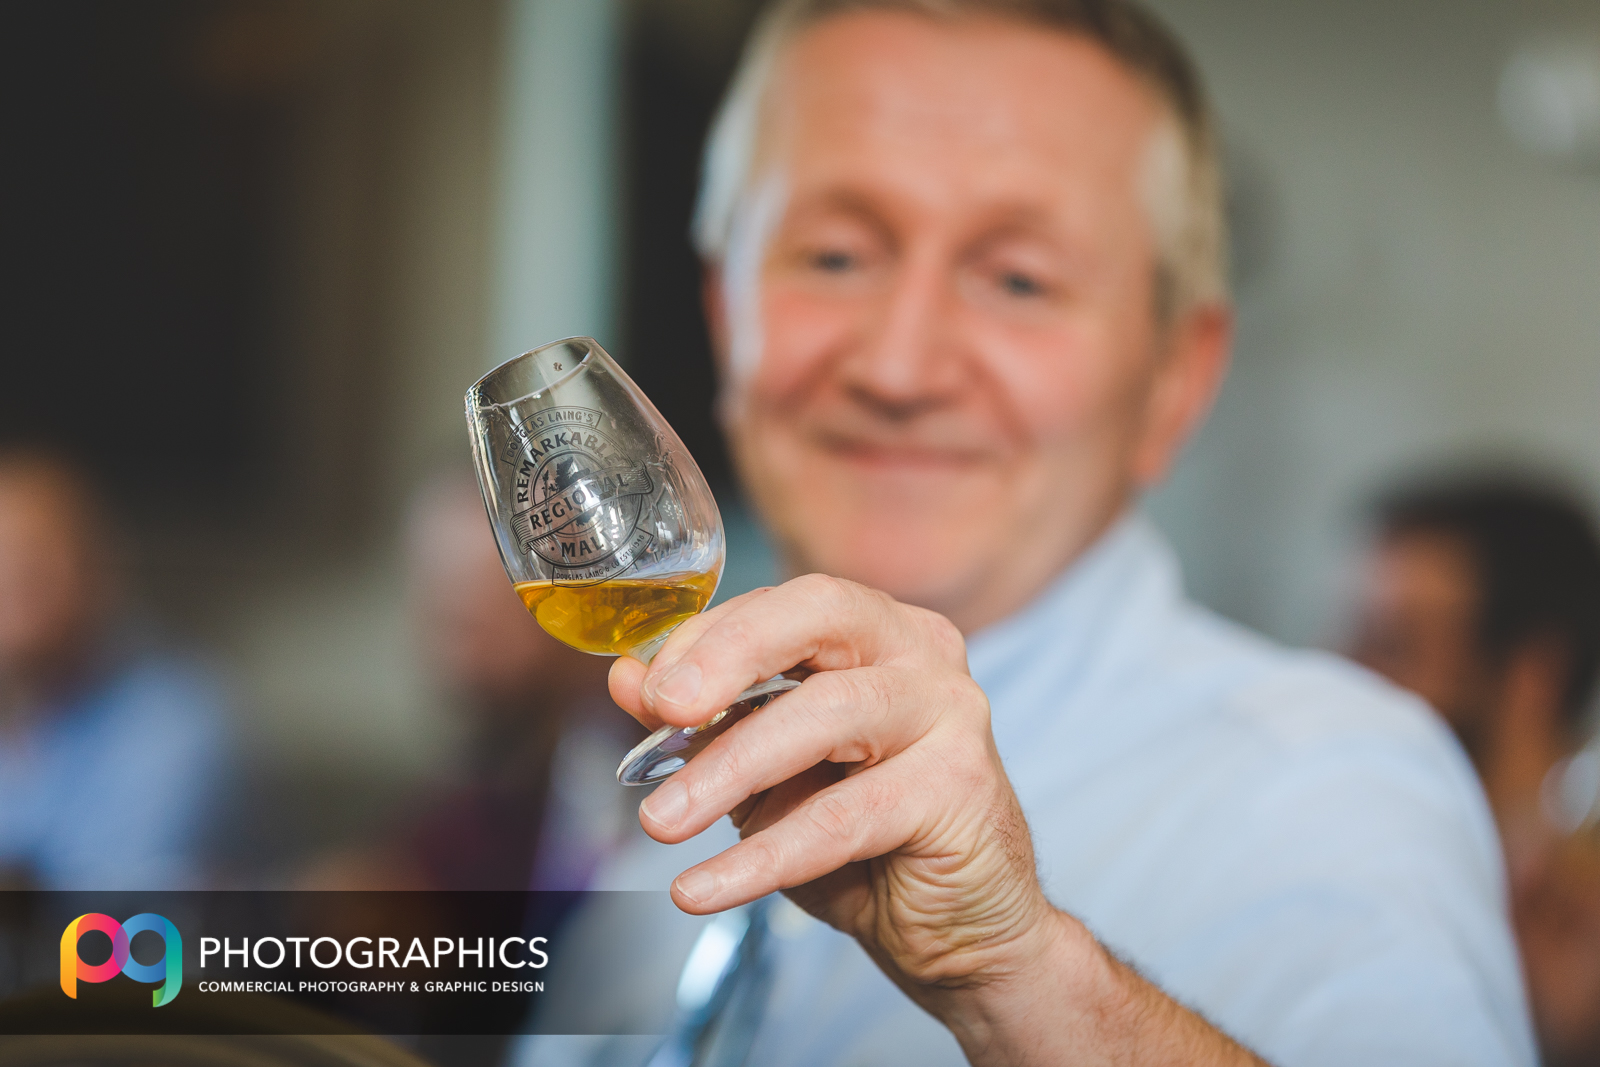 whisky-tasting-event-photography-glasgow-edinburgh-scotland-12.jpg